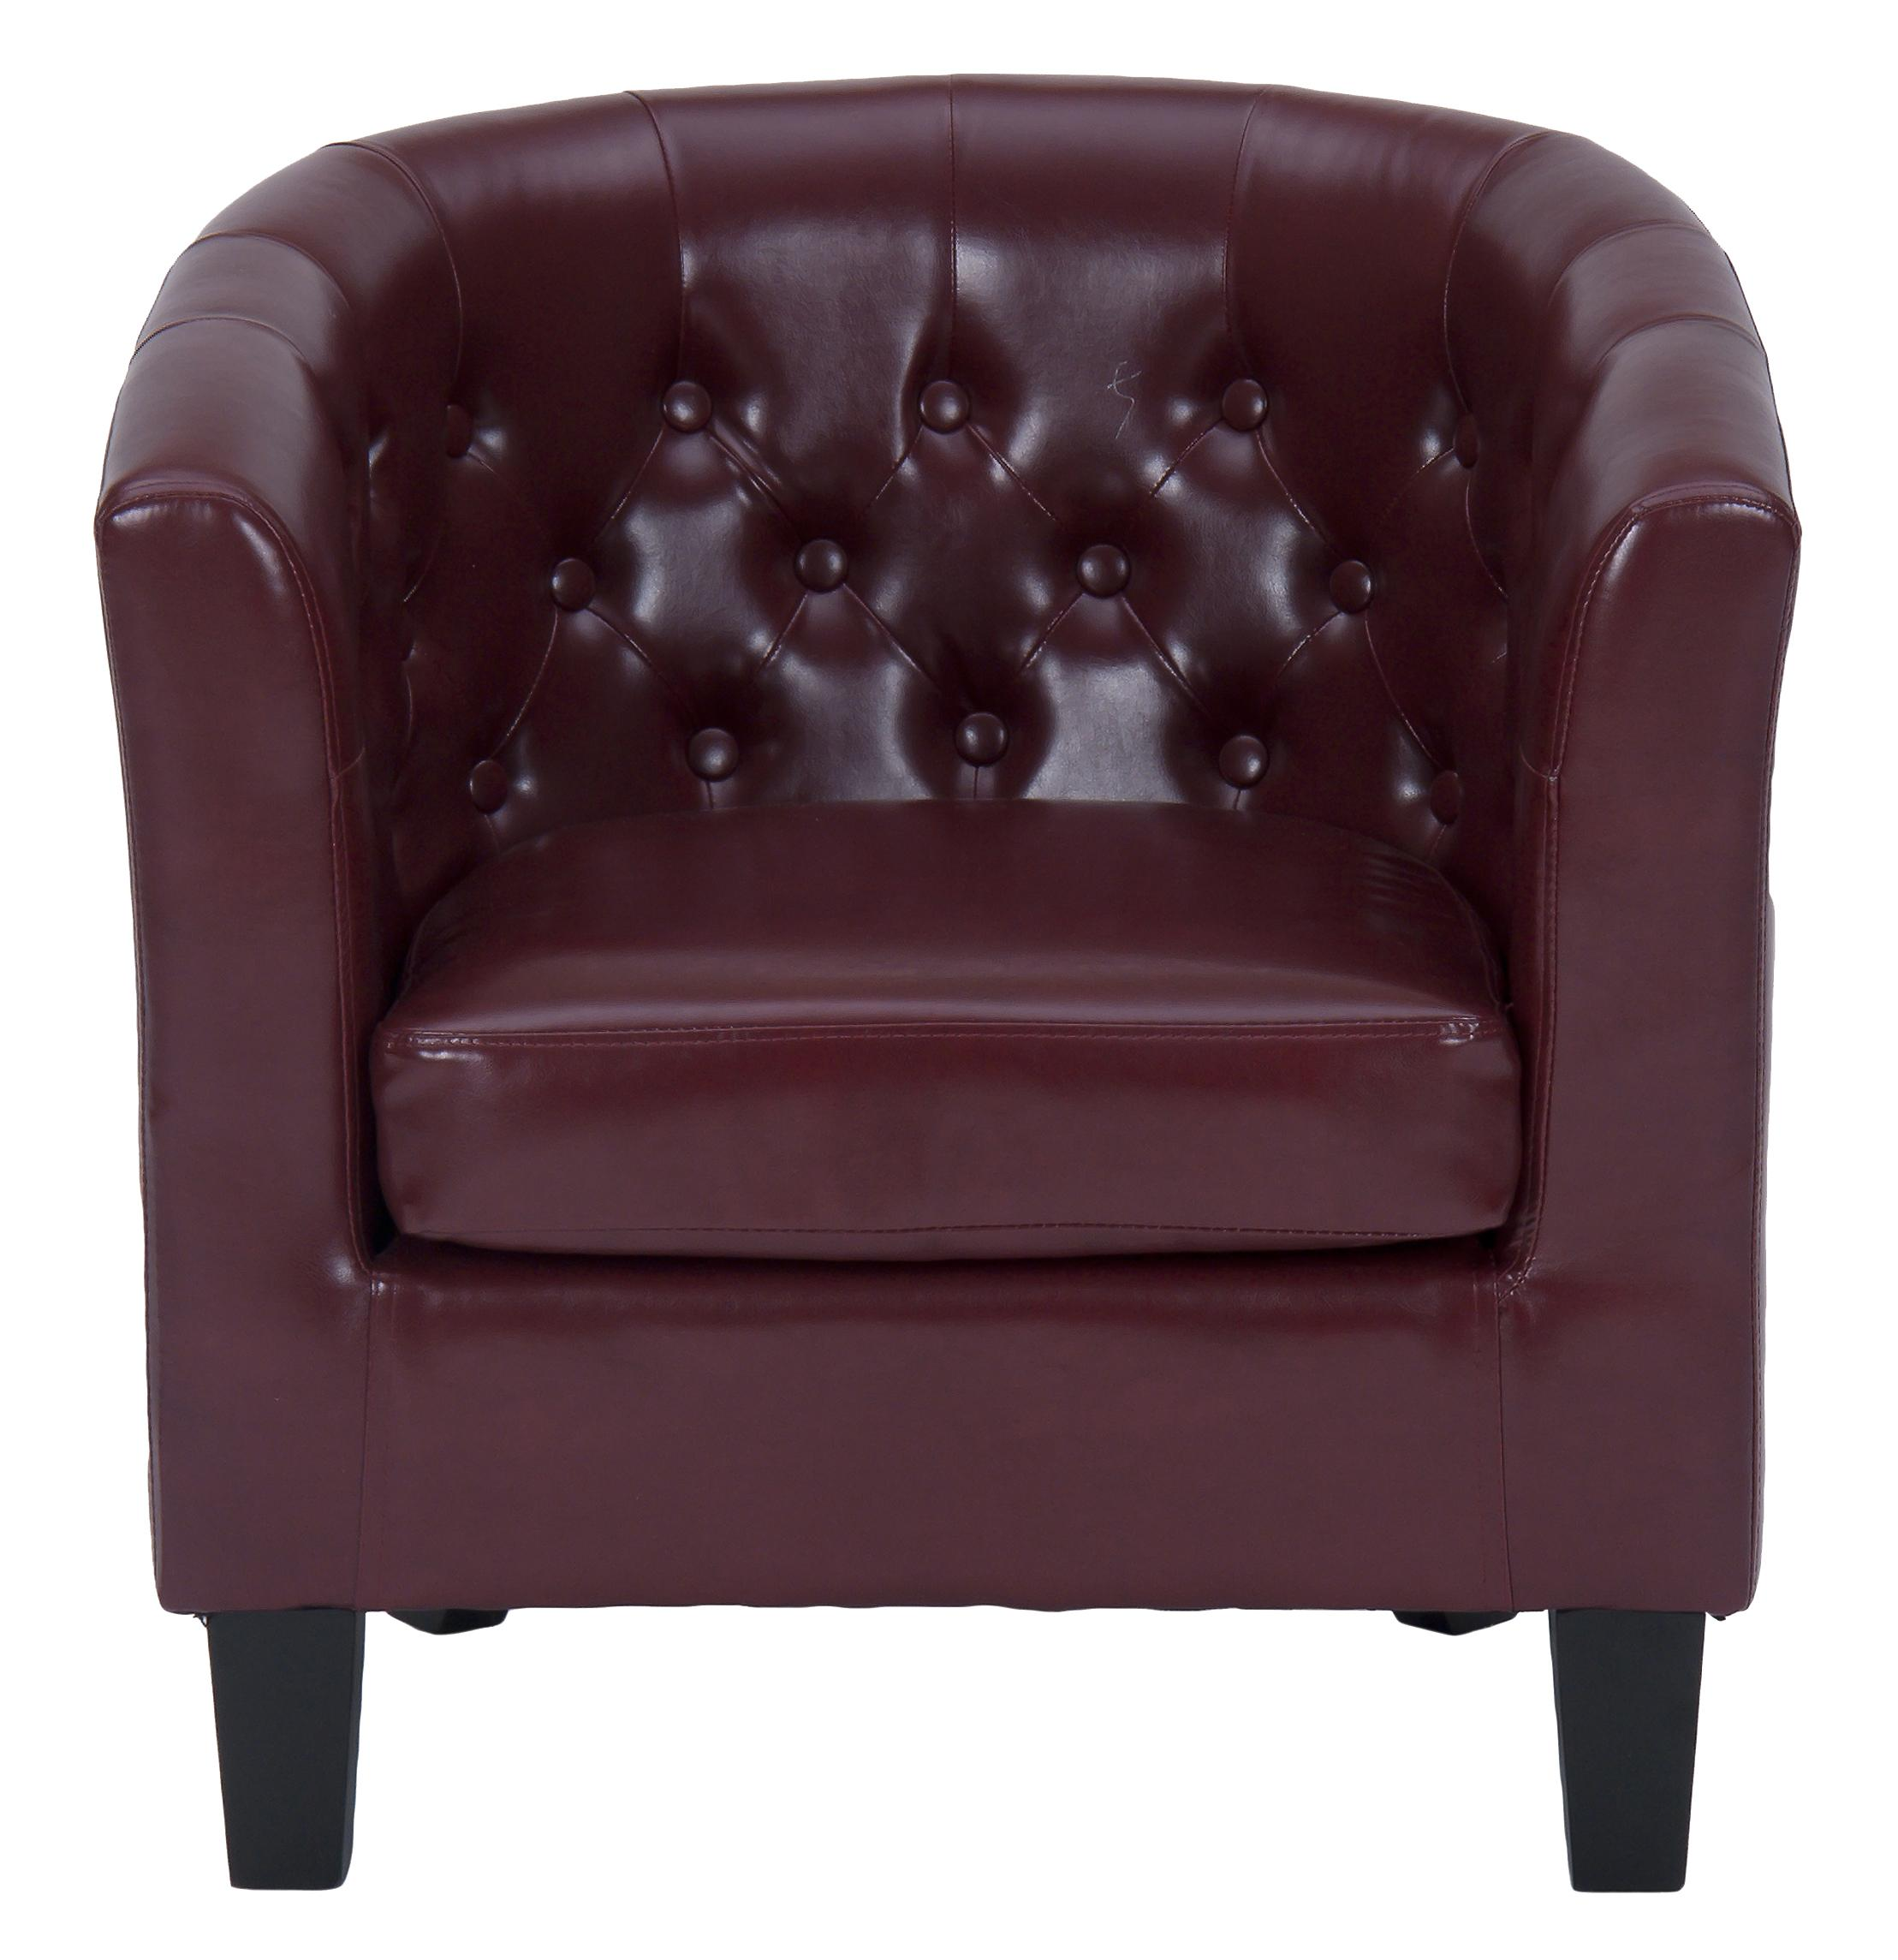 Jofran Upholstered Accent Chairs Red Gianni Club Chair - Item Number: GIANNI-CH-RED